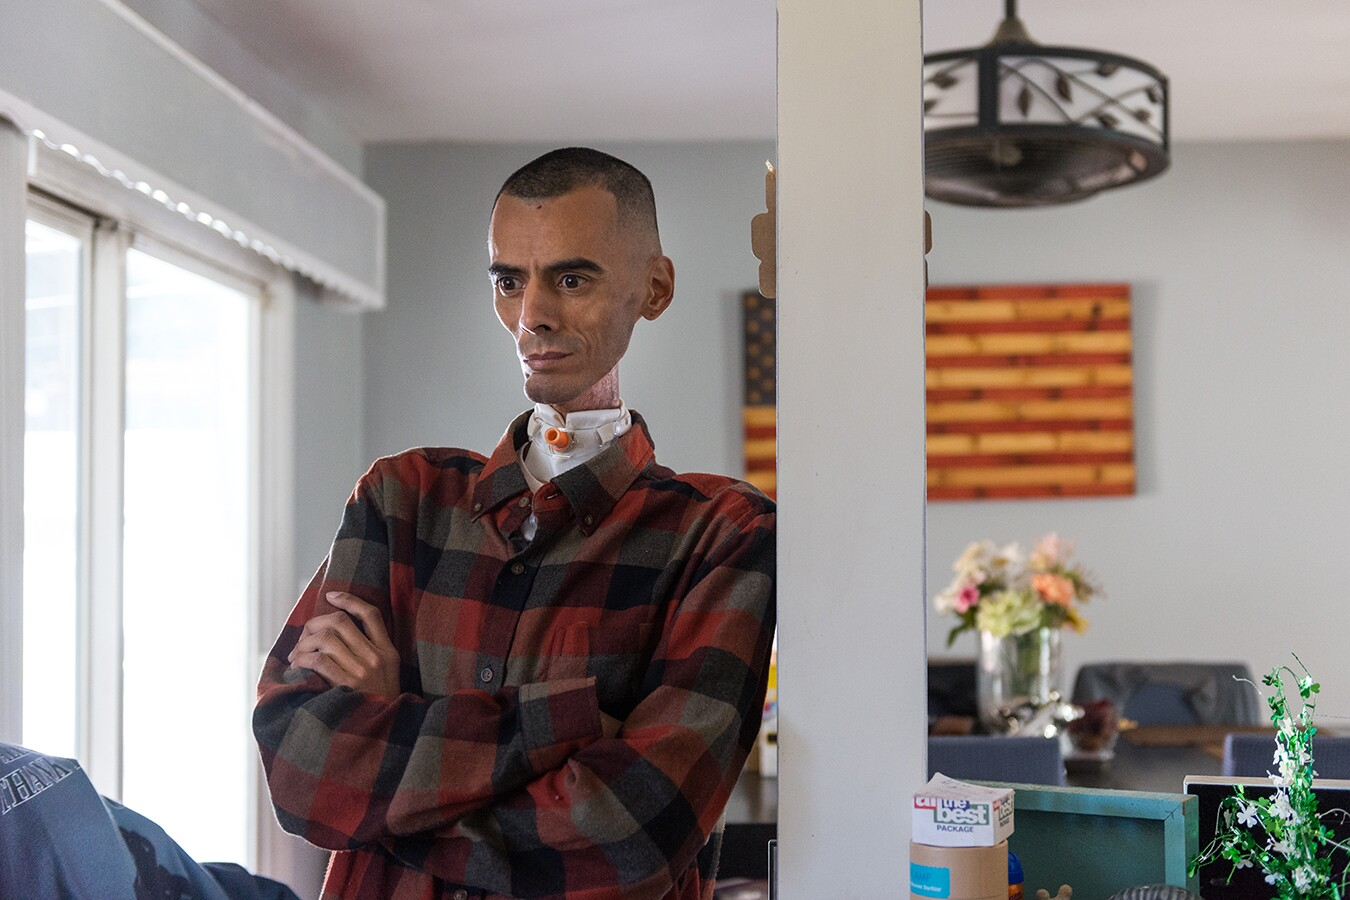 Brian, Rhianna's father, leans against a post in their home. He's standing with his arms crossed, wearing a red button up shirt. Behind him is an American flag wall piece.